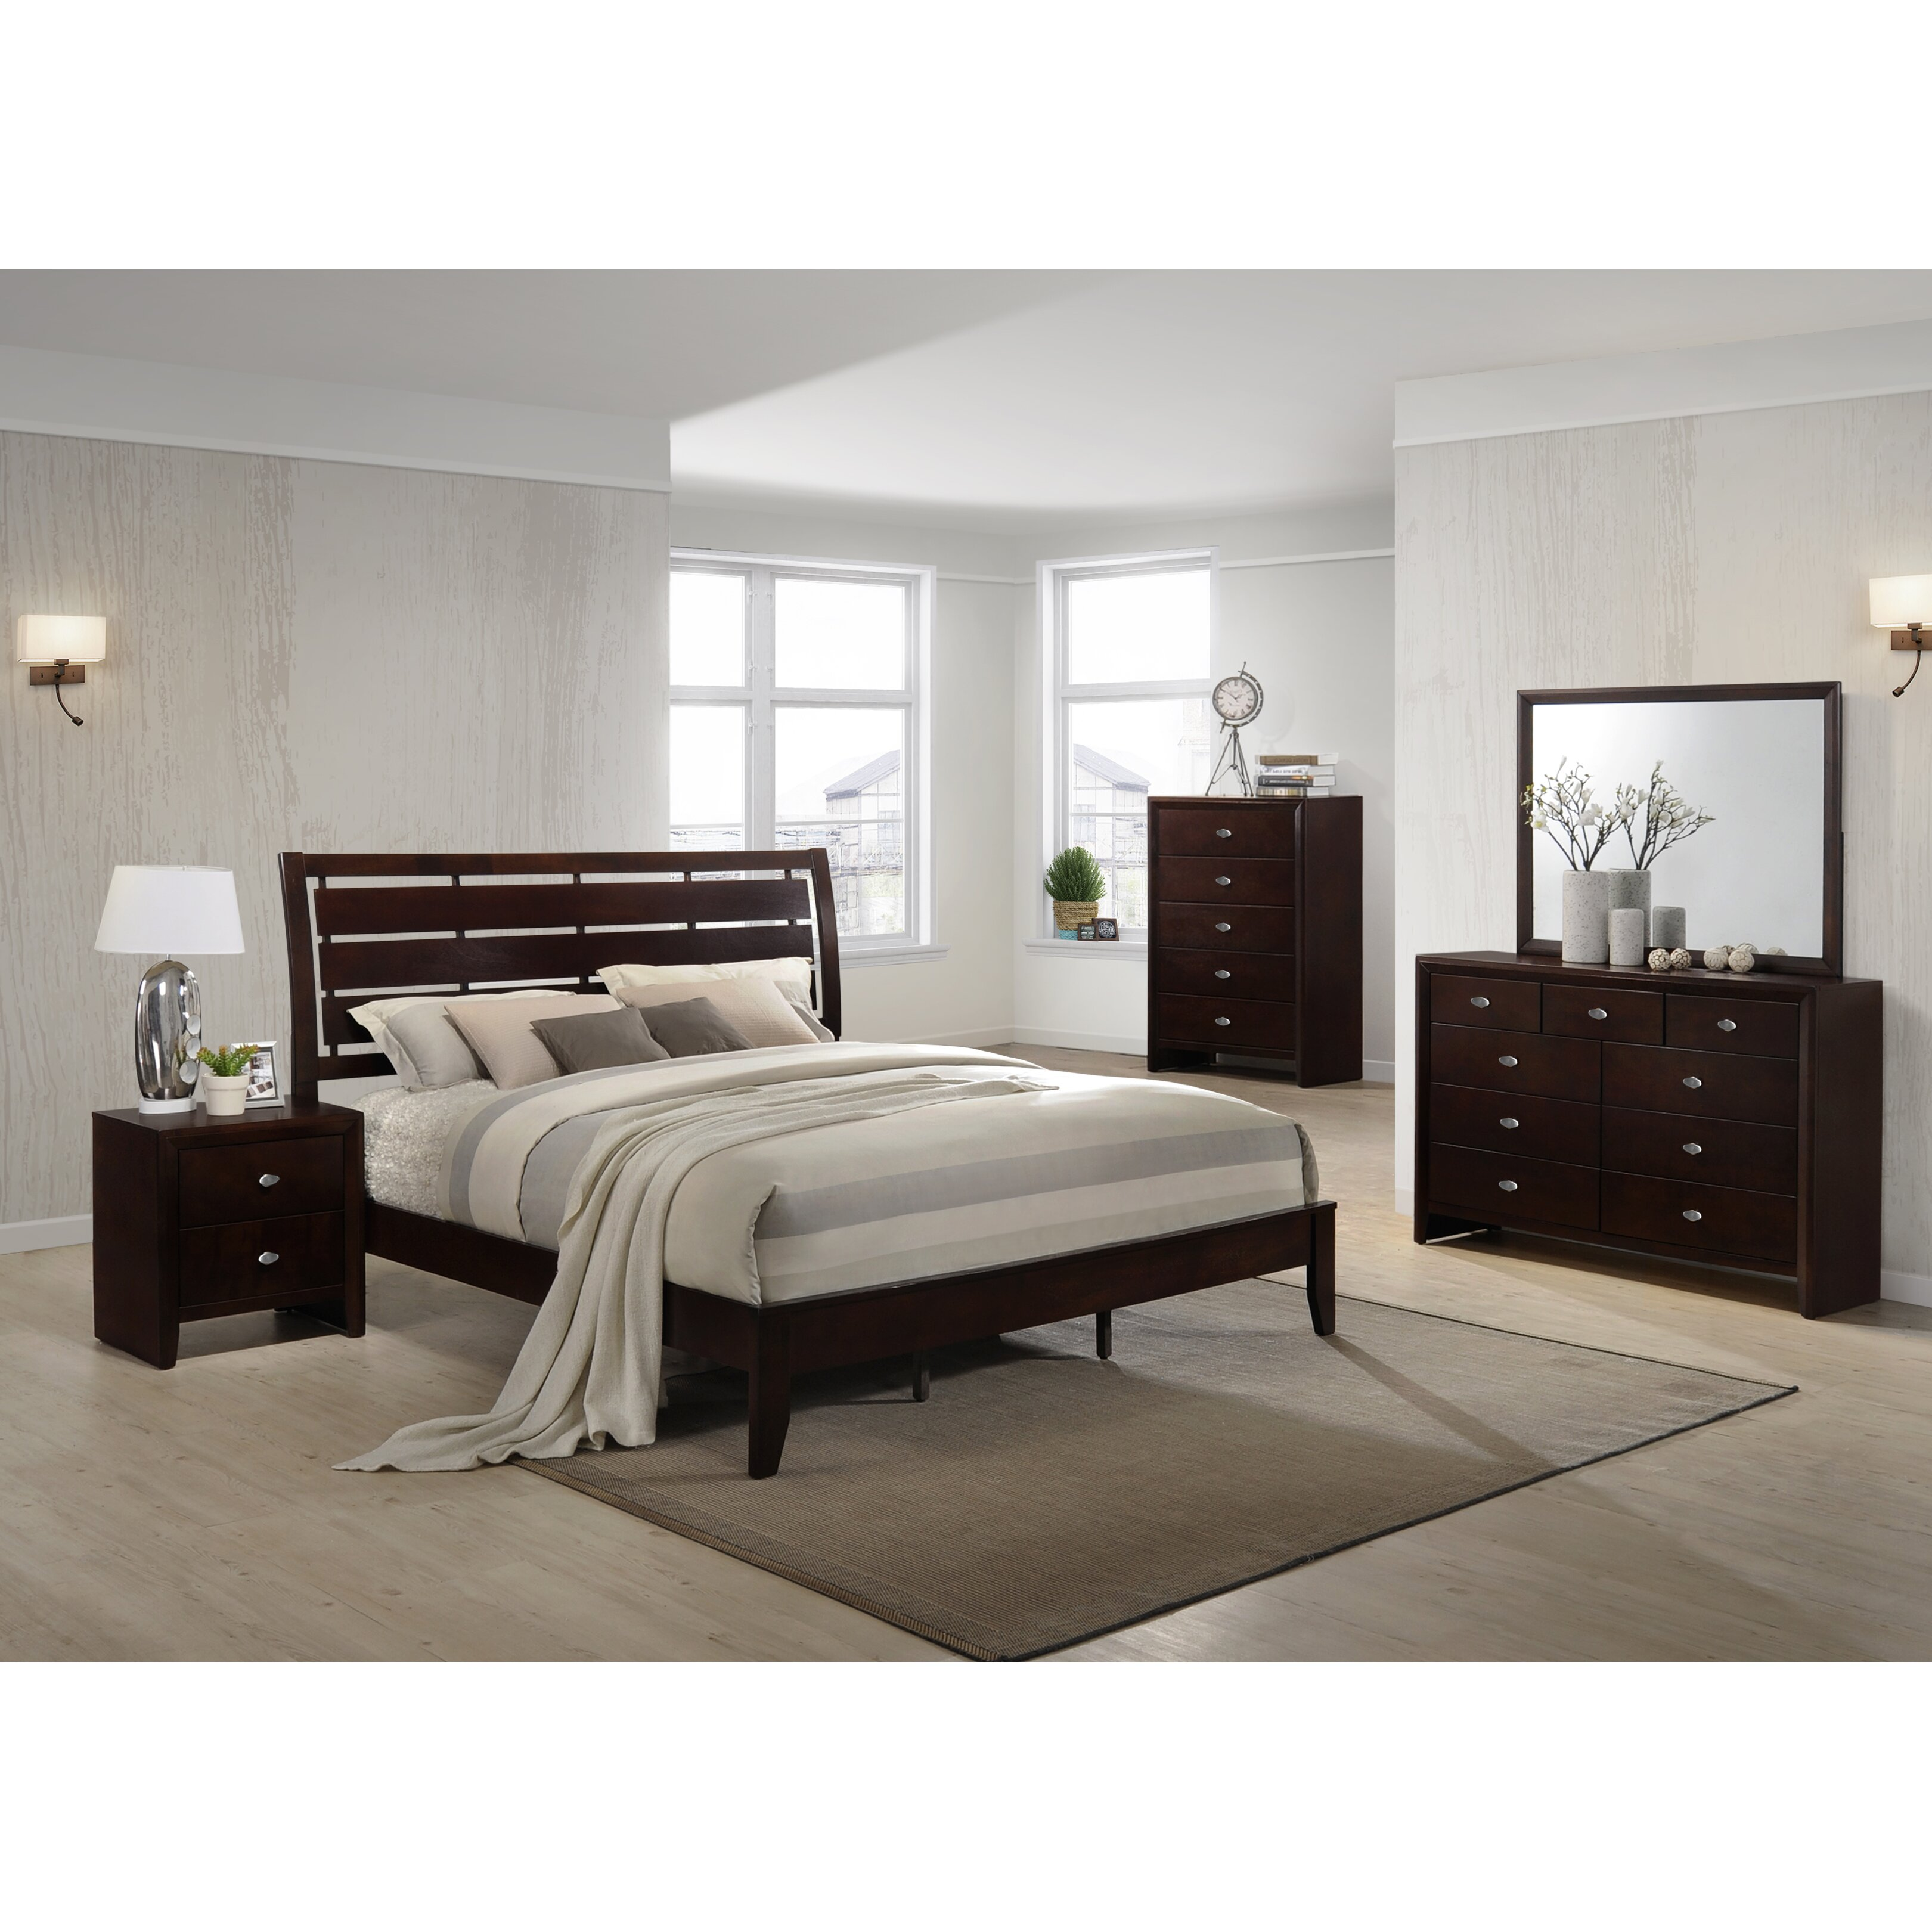 Roundhill furniture gloria panel 5 piece bedroom set for Furniture 2 day shipping